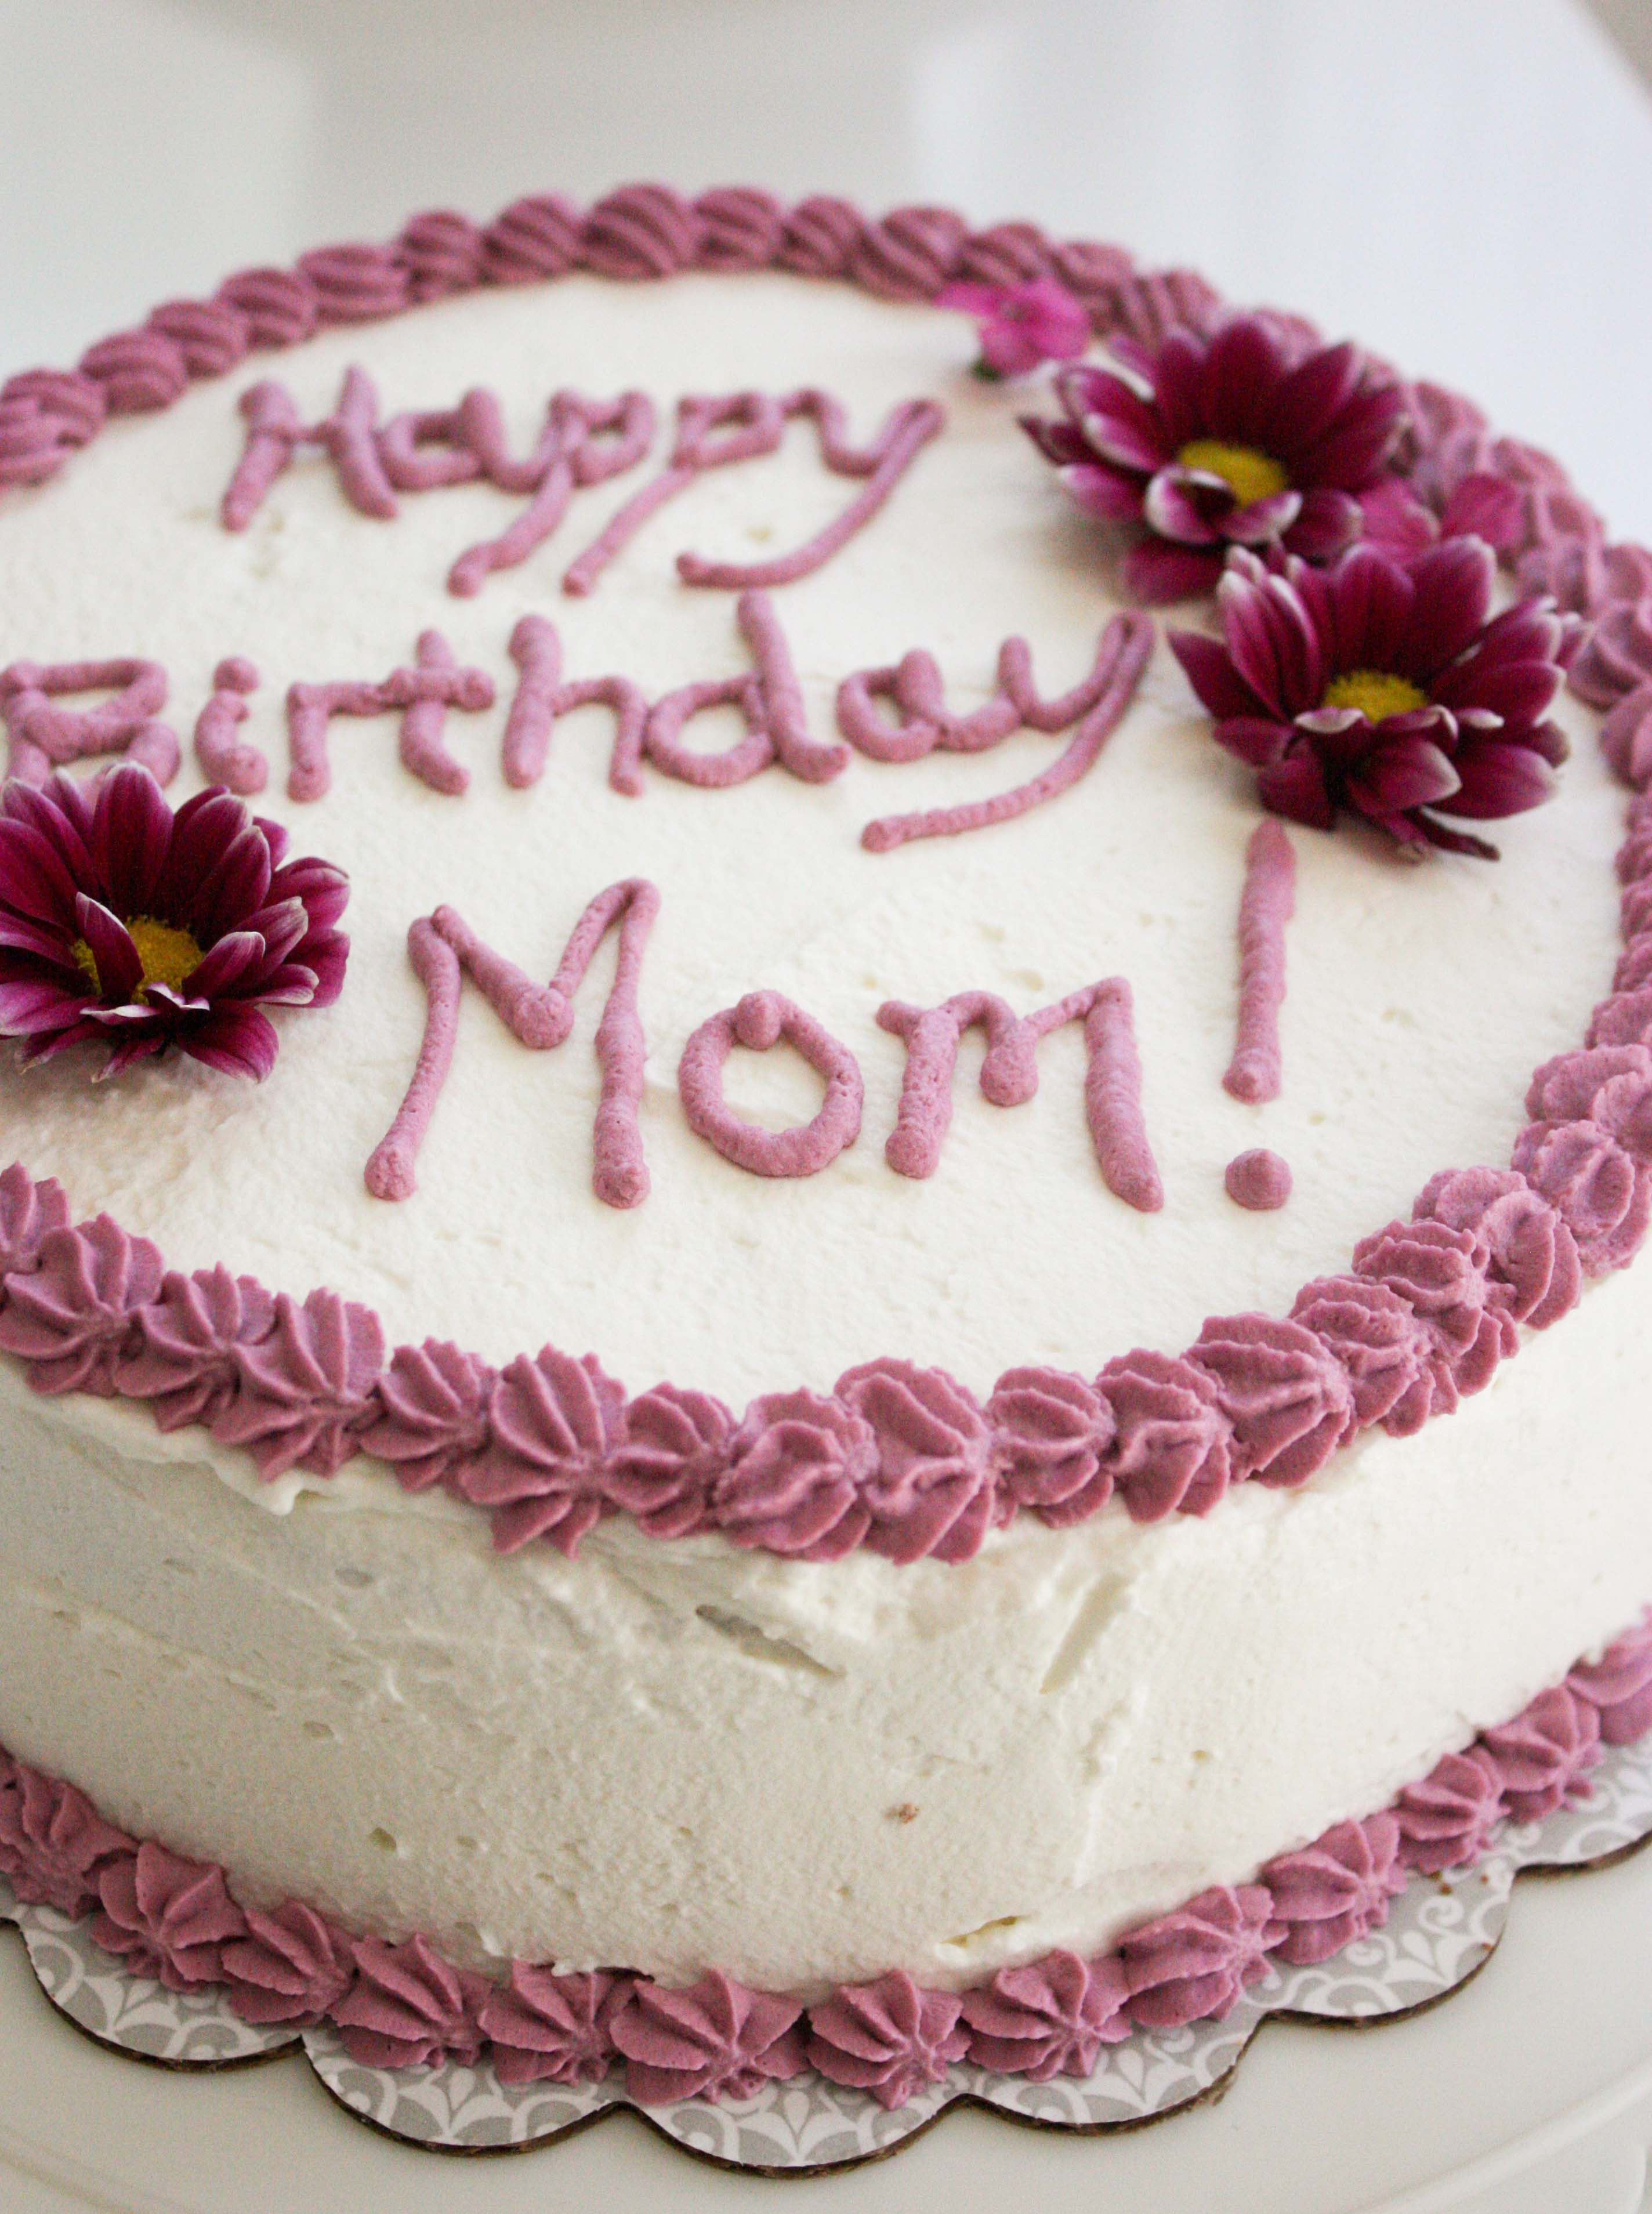 Birthday Cake For Mom  Happy birthday mom quotes and wishes